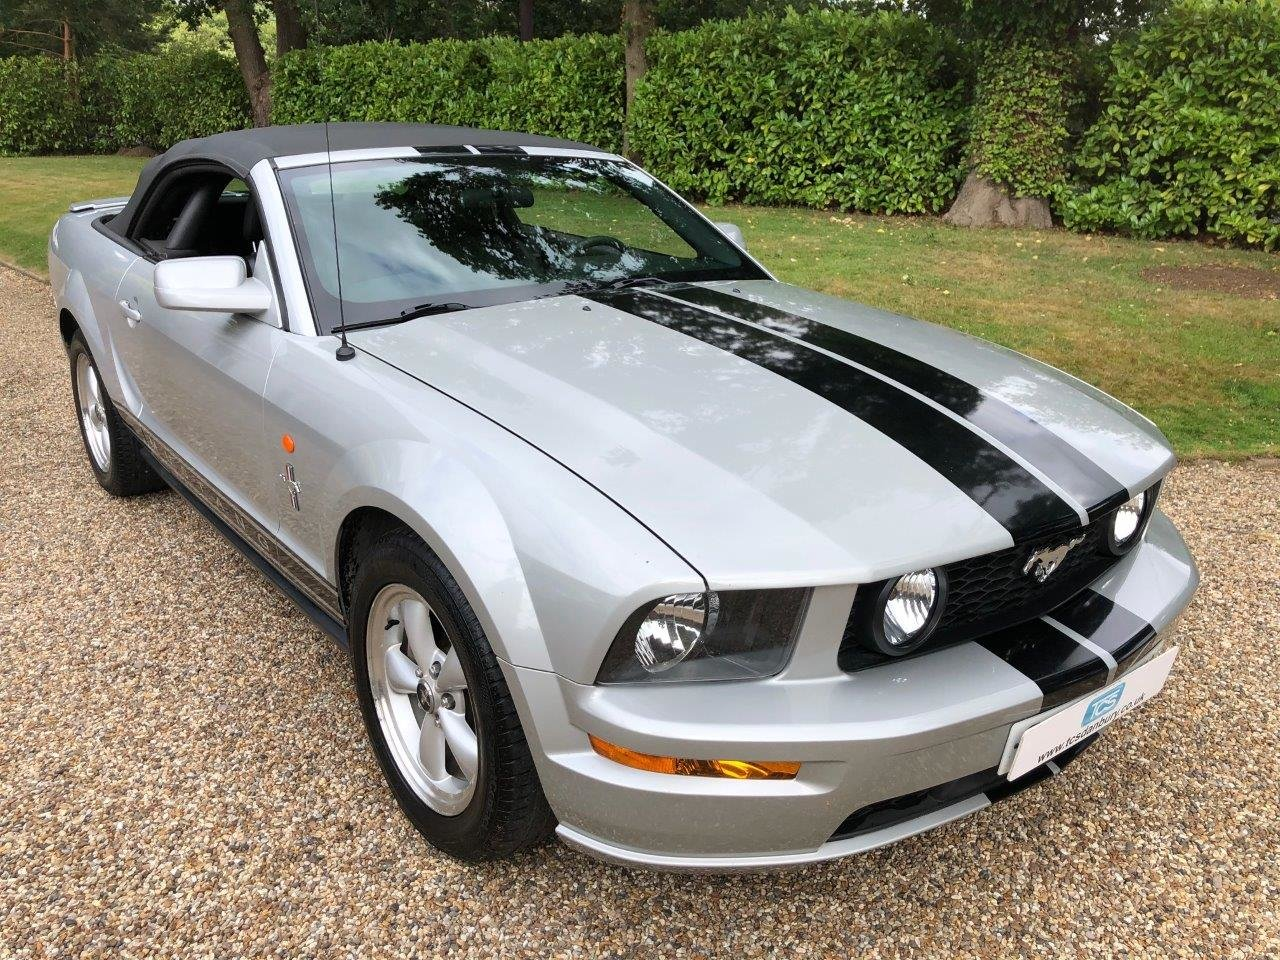 2009 Ford Mustang Premium Convertible 4.0L Automatic For Sale (picture 1 of 6)